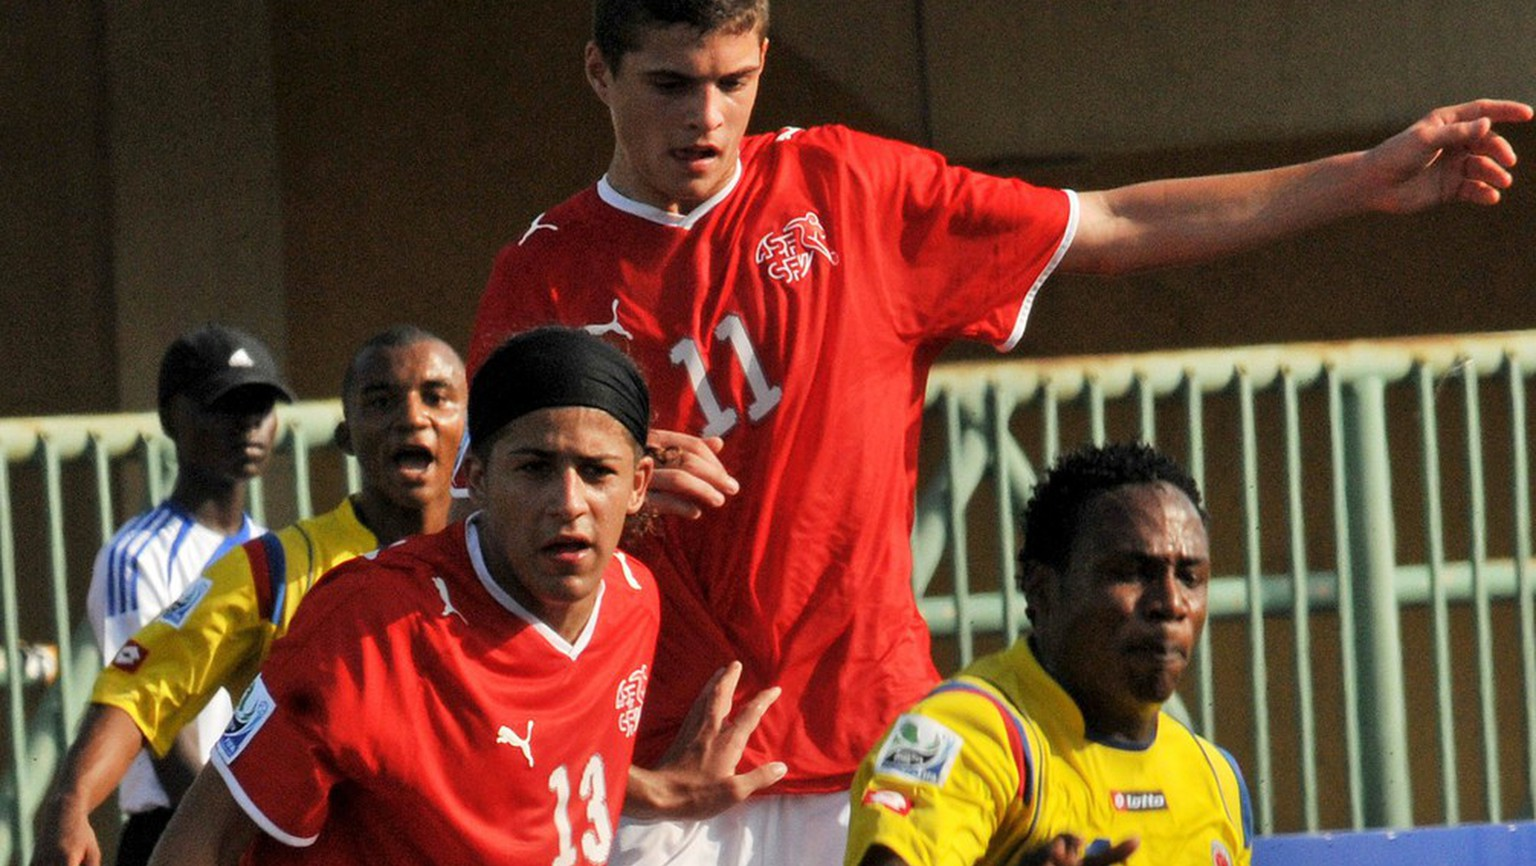 Switzerland's Ricardo Rodriguez, left, and Granit Xhaka challenge Colombia's Wilson Cuero during their U17 World Cup semi-final soccer match Lagos, Nigeria Thursday, Nov. 12, 2009. (AP Photo/Segun Ogunfeyitimi)